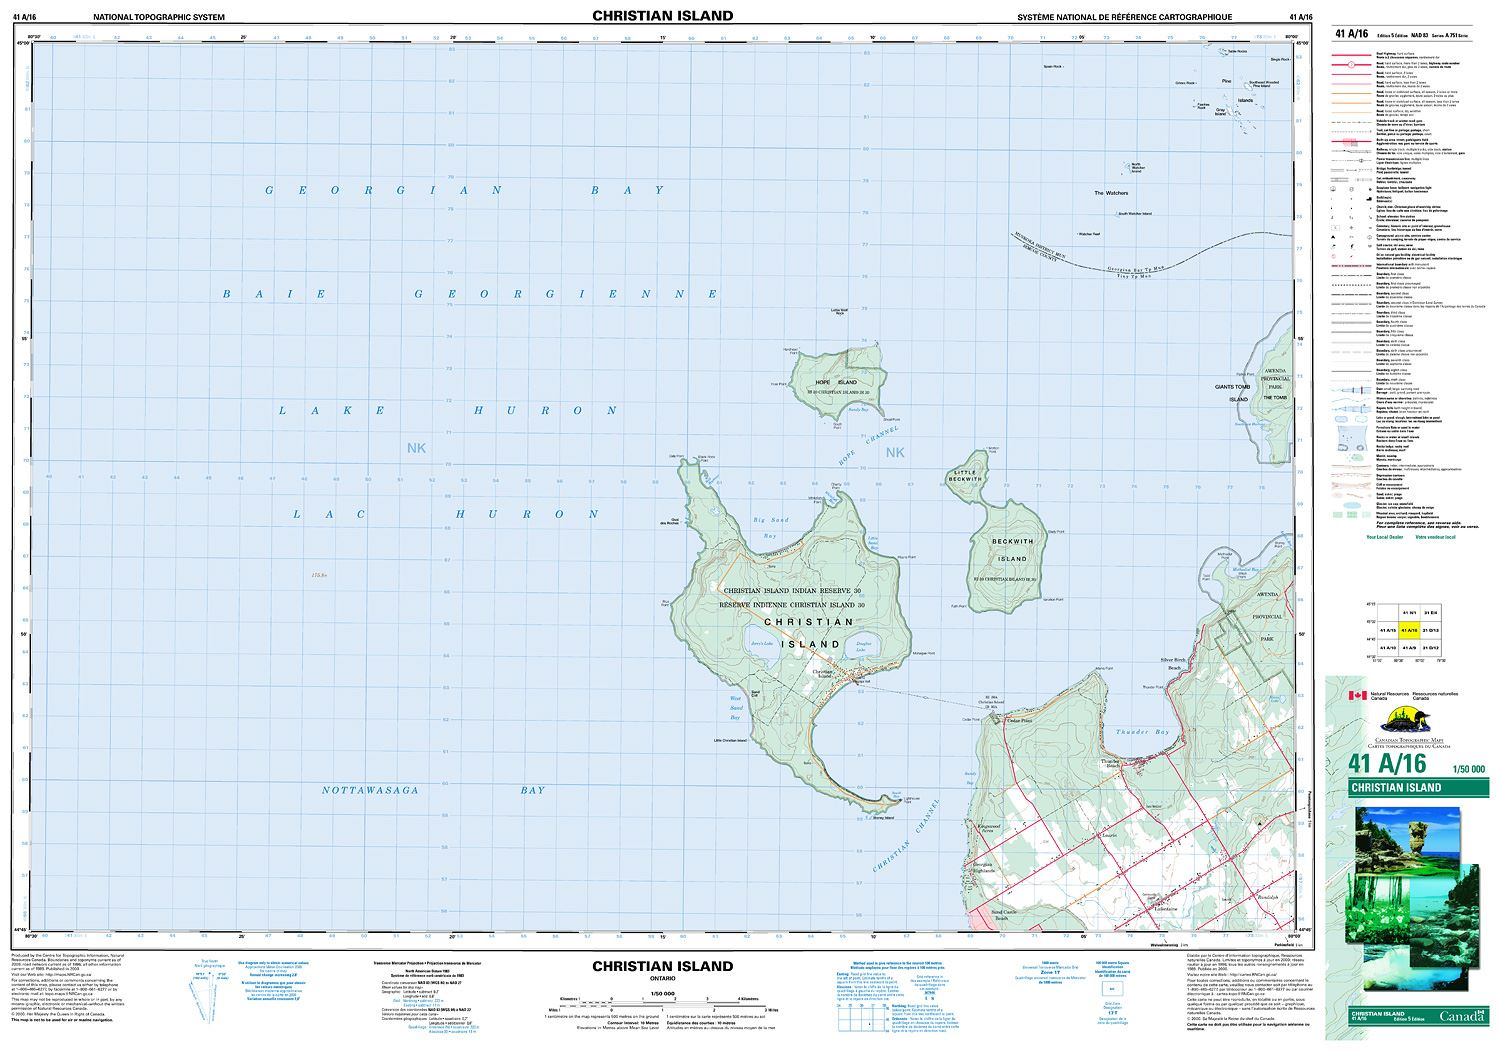 041a16 Christian Island Topographic Map